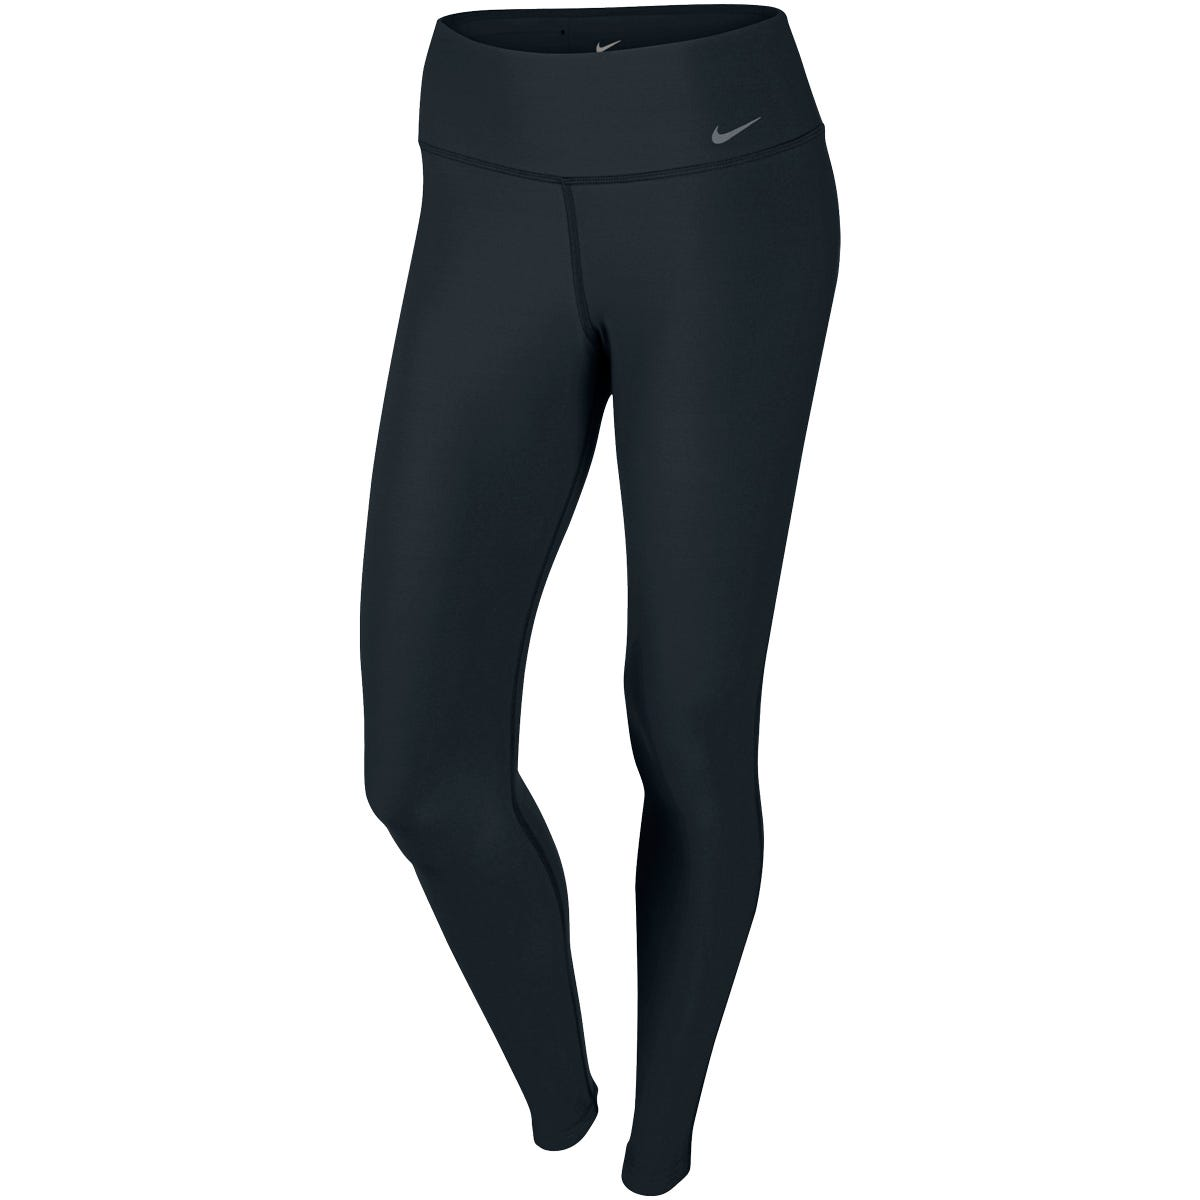 Womens Large Legend 2.0 Softball Training Pants - Gray/Black by Nike